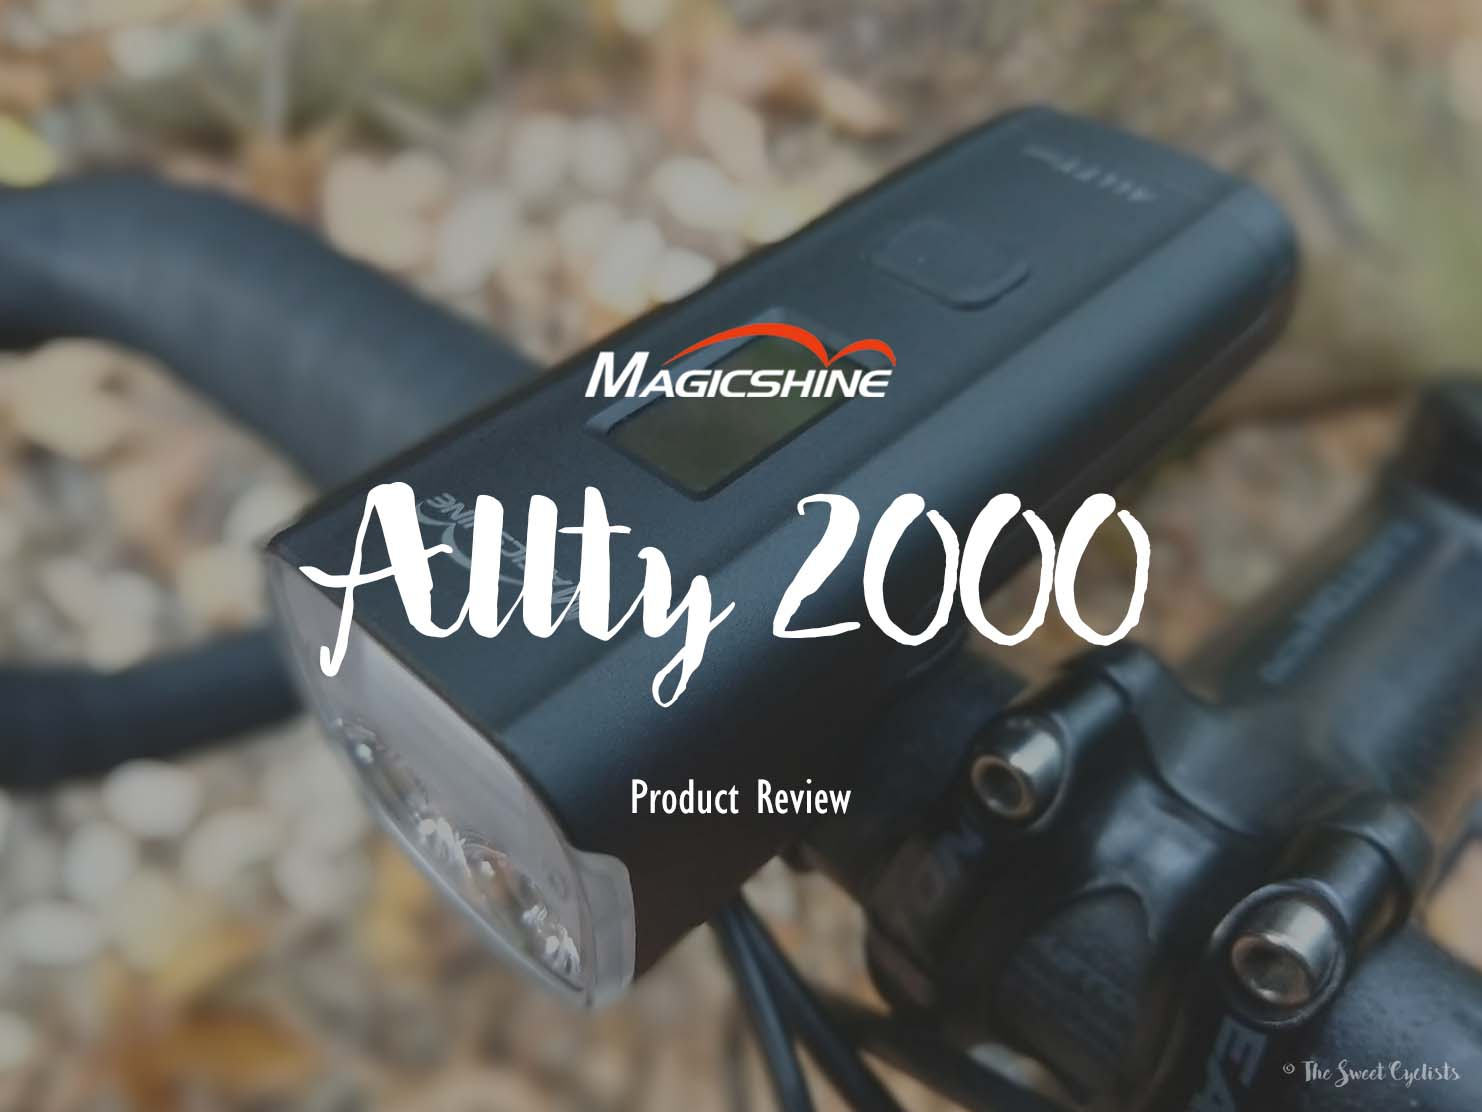 Feature packed Allty 2000 all-in-one bike light